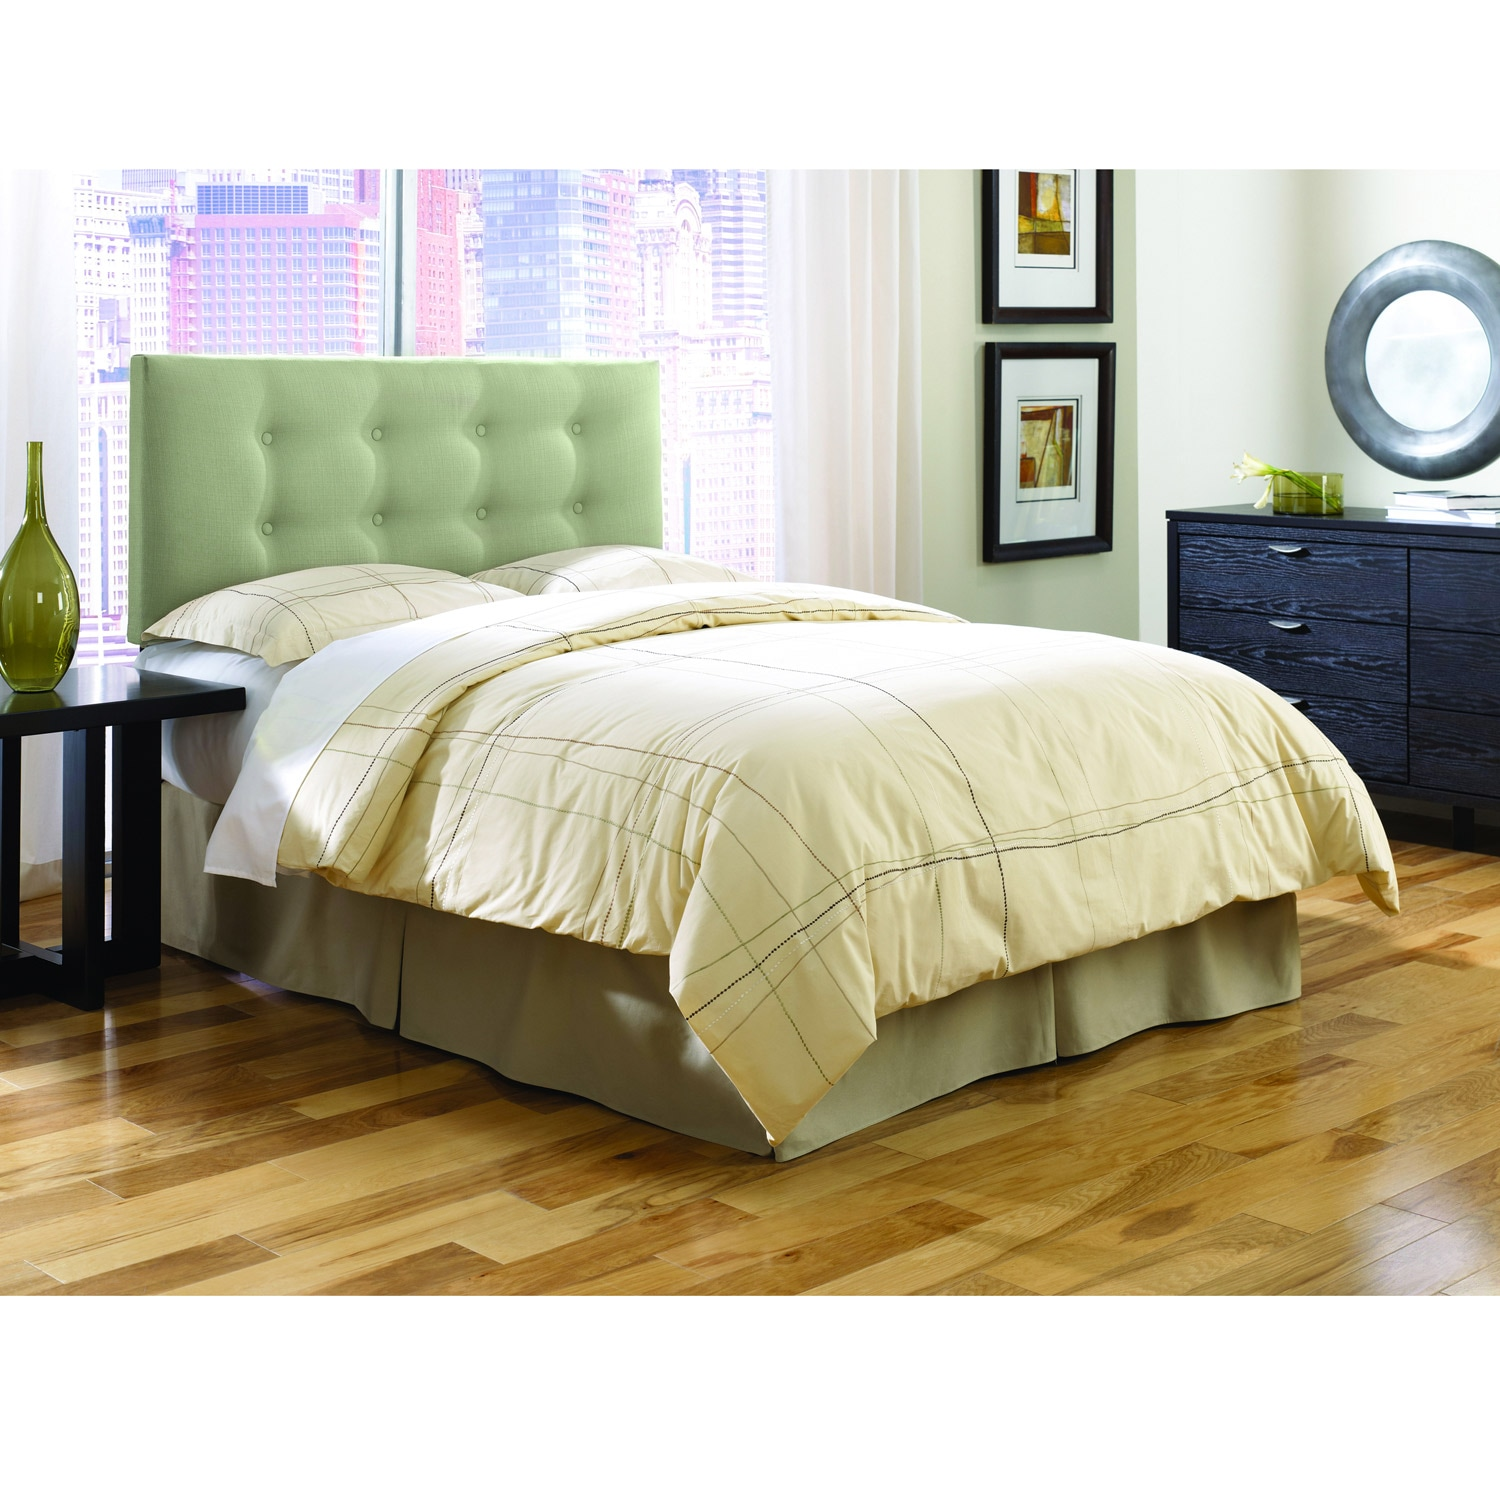 Chambery Sage Upholstered King-size Headboard